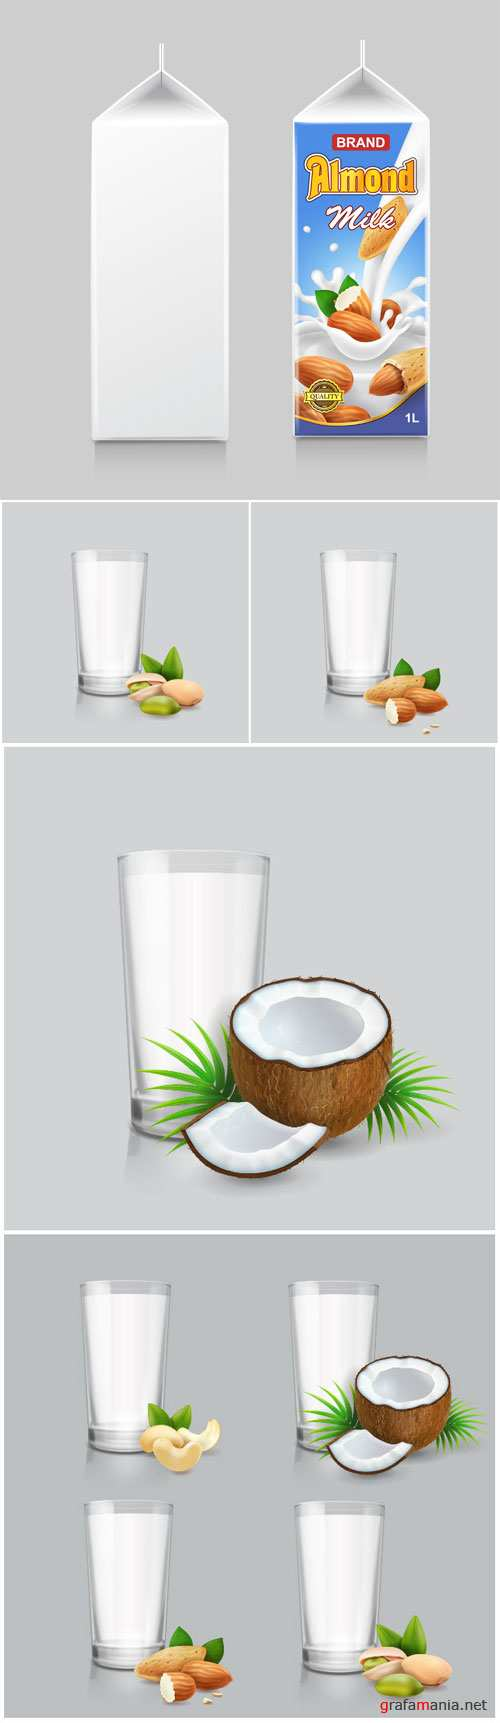 Dairy milk set, vegan nut milk in drinking glass